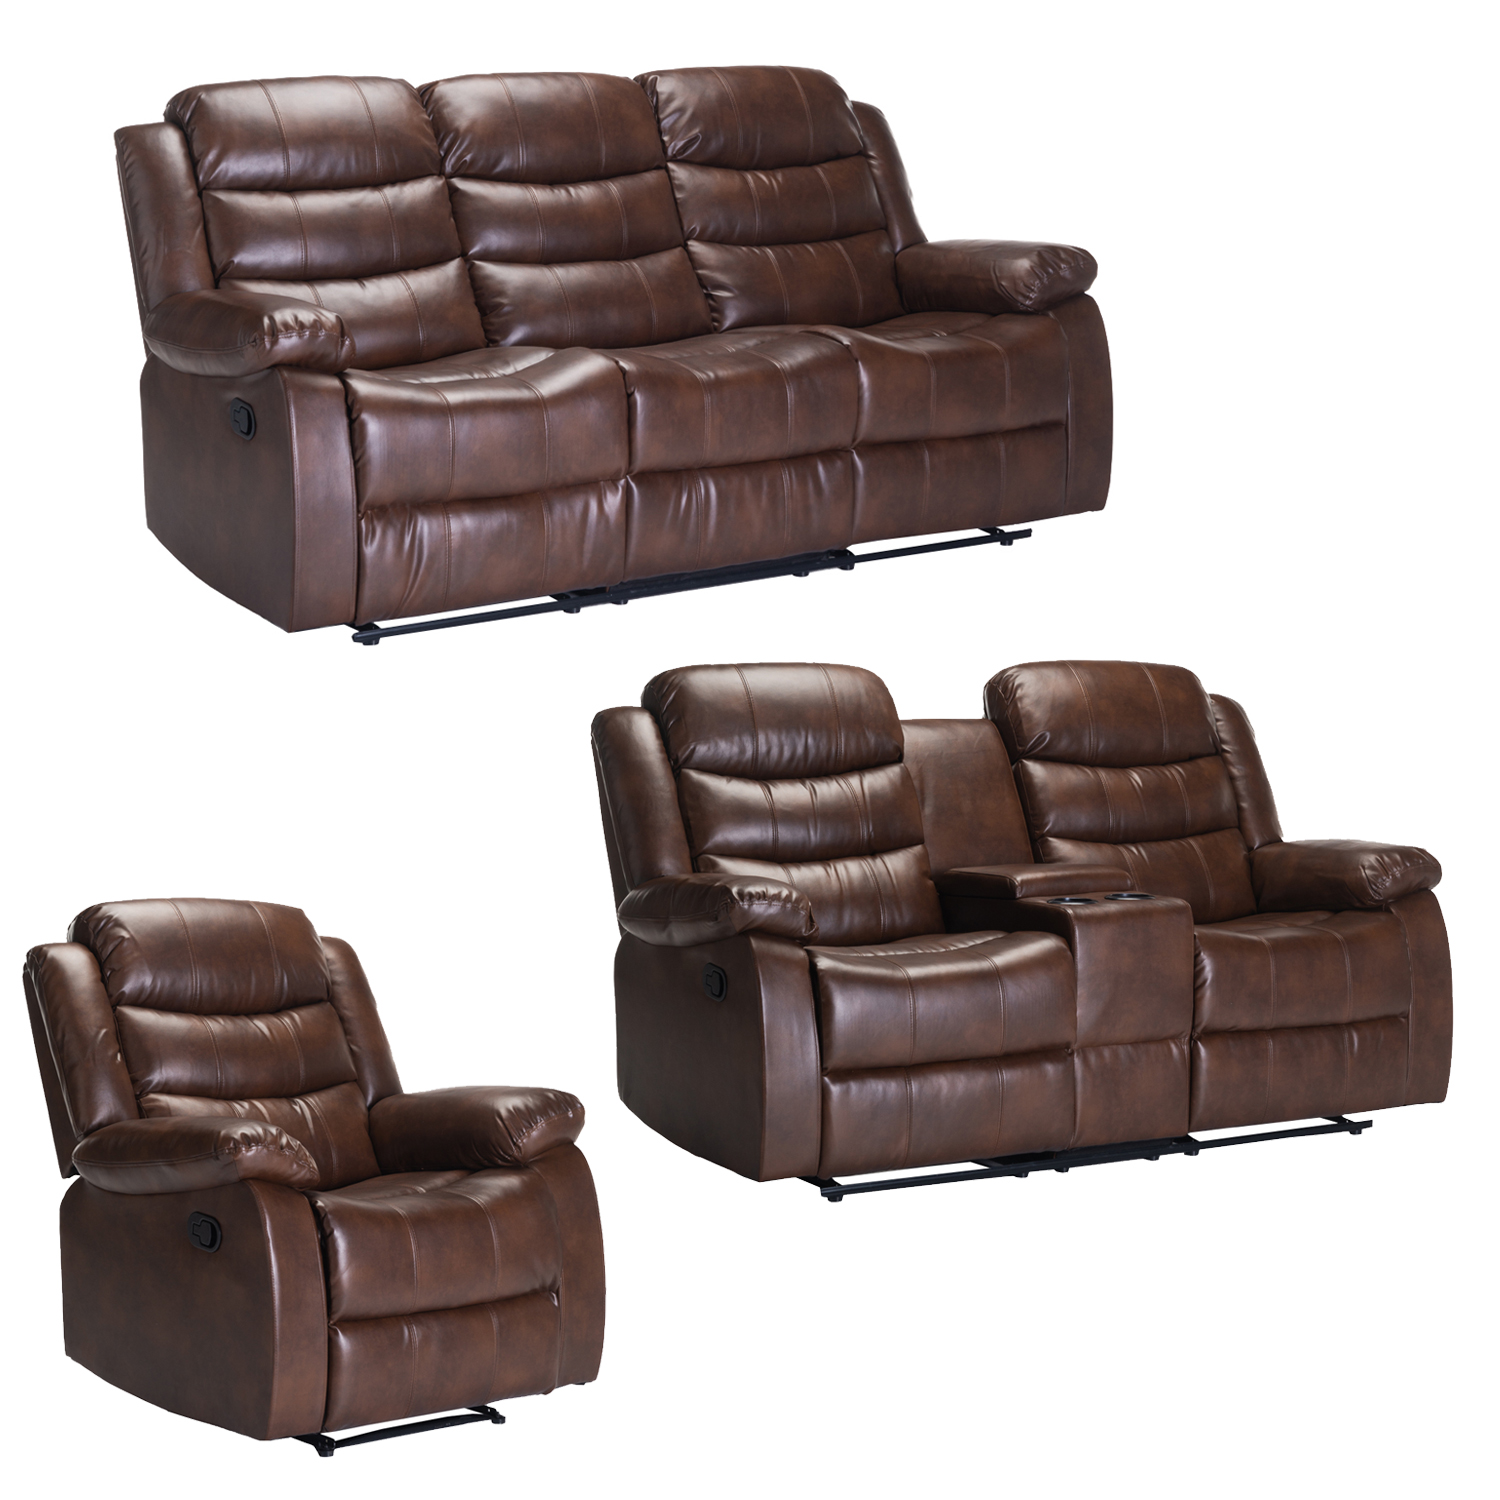 YUZI BONDED LEATHER UPPER 3PC SET WALNUT WITH CONSOLE